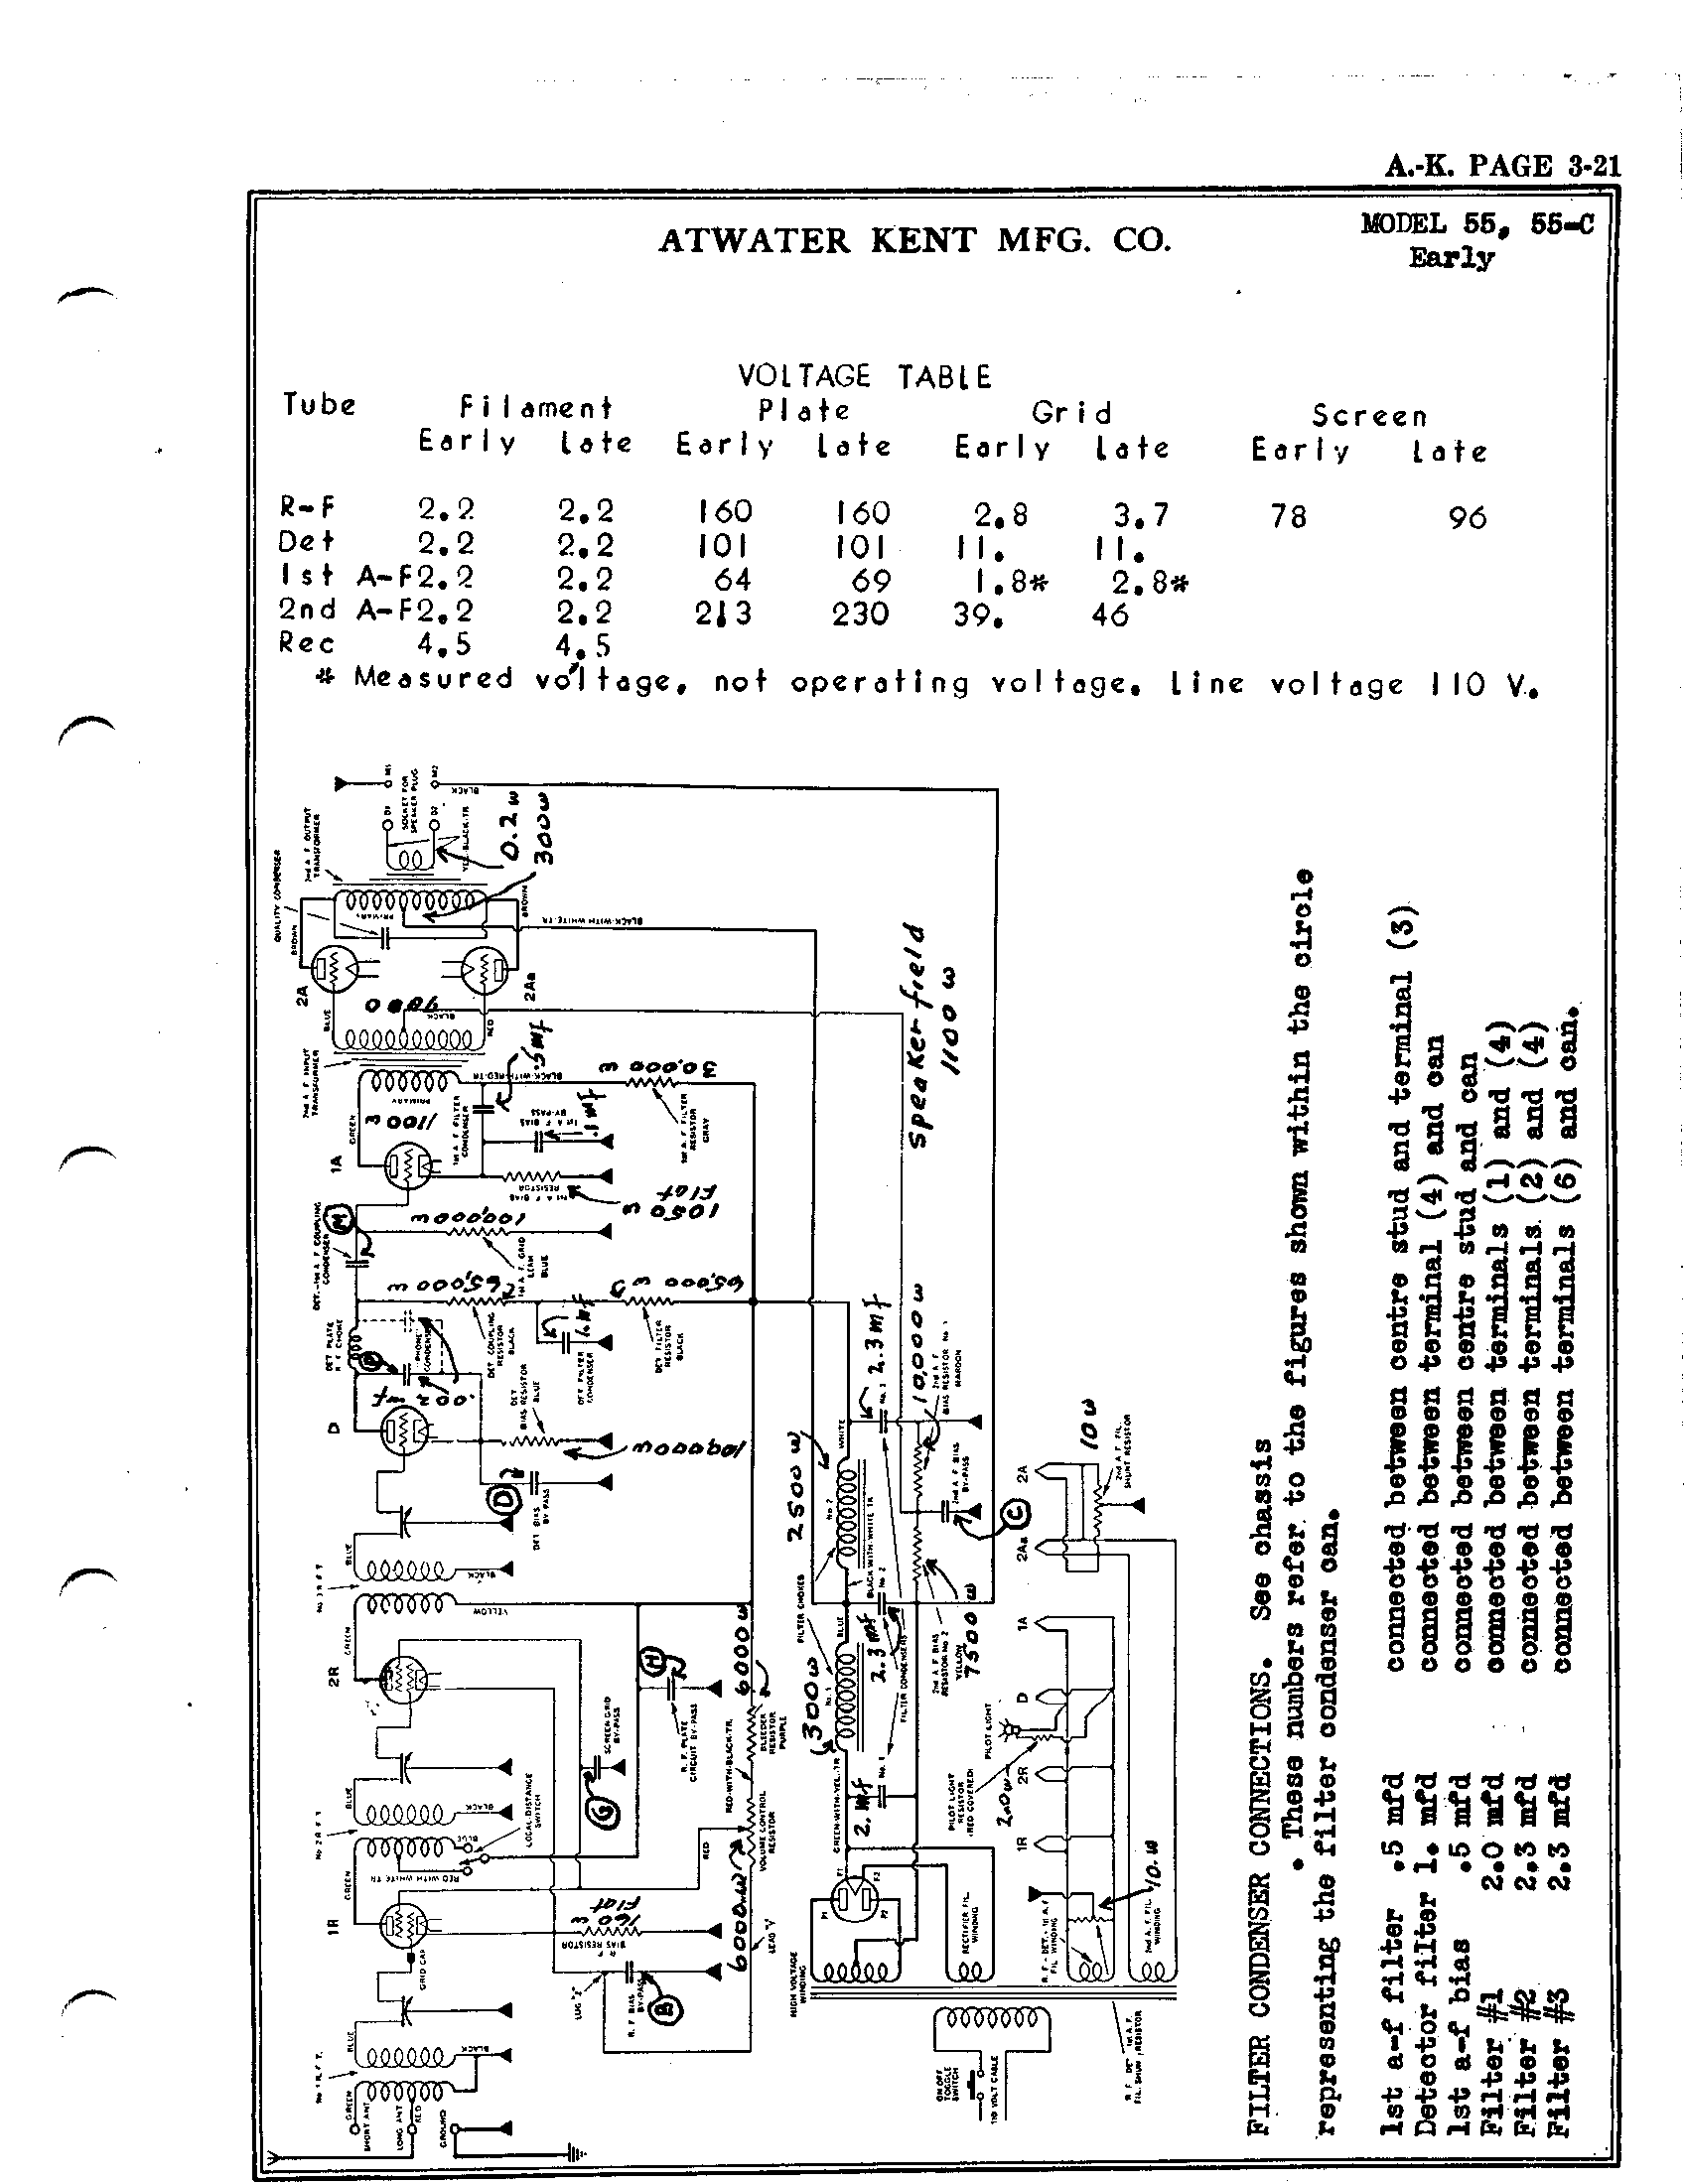 Incredible Asv Rc85 Wiring Diagram Wiring Diagram Schematics Wiring Cloud Xortanetembamohammedshrineorg